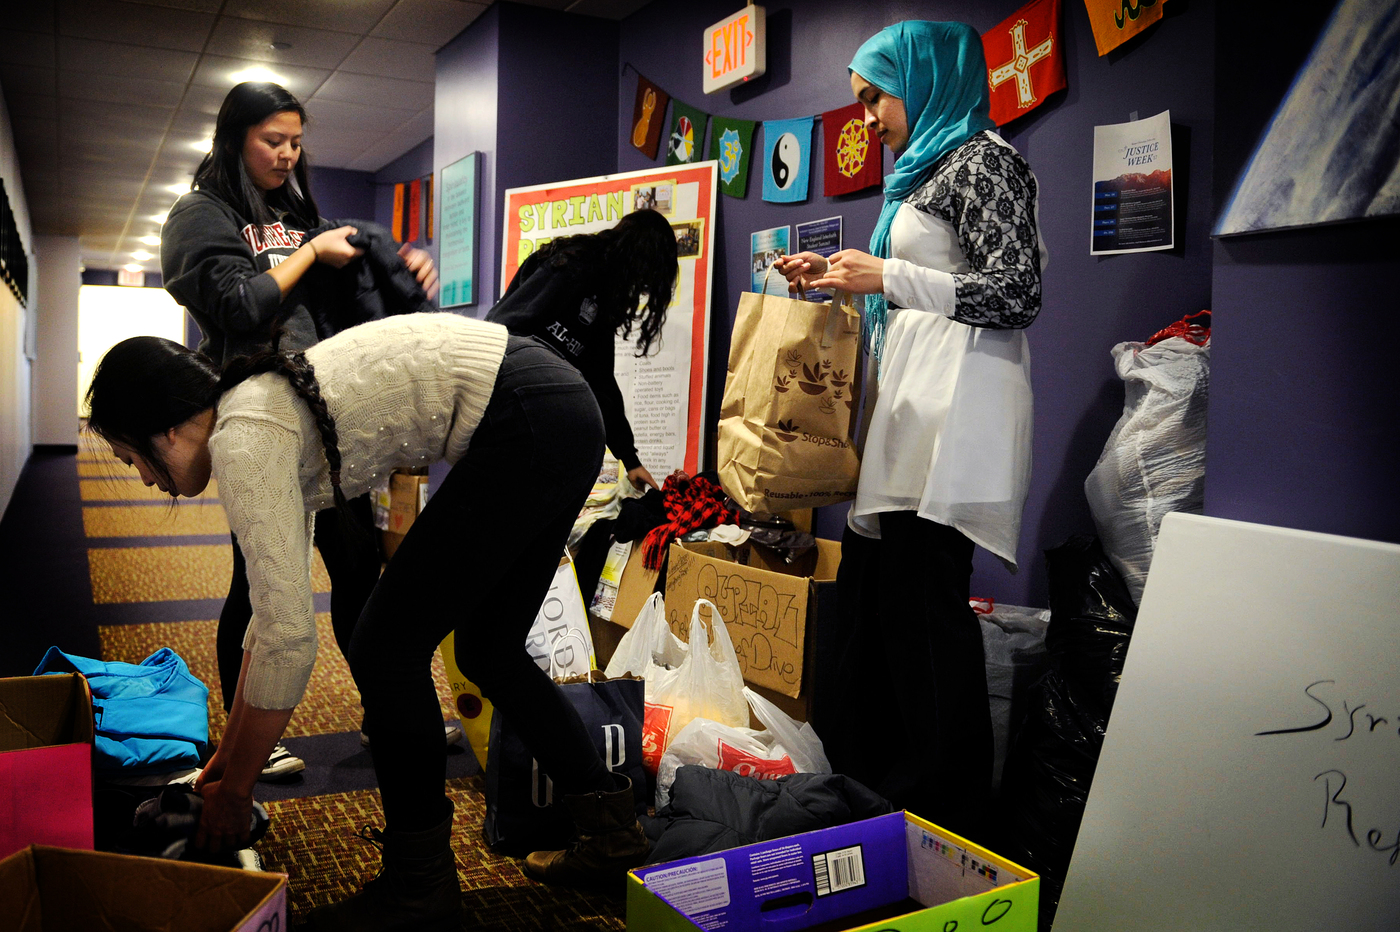 Feb. 3, 2017 - BOSTON, MA. - Karin Firoza, Assistant Director, Center for Spirituality, Dialogue, and Service, sorts through donations for the Syrian Refugee Relief Drive with Emily Luu, BHS'20, Maia Mellor, SSH'19, and Habiba Shaheed, S'20, at Northeastern University on Feb. 3, 2017. Donations can be made here: nudaysyria.net Photo by Matthew Modoono/Northeastern University